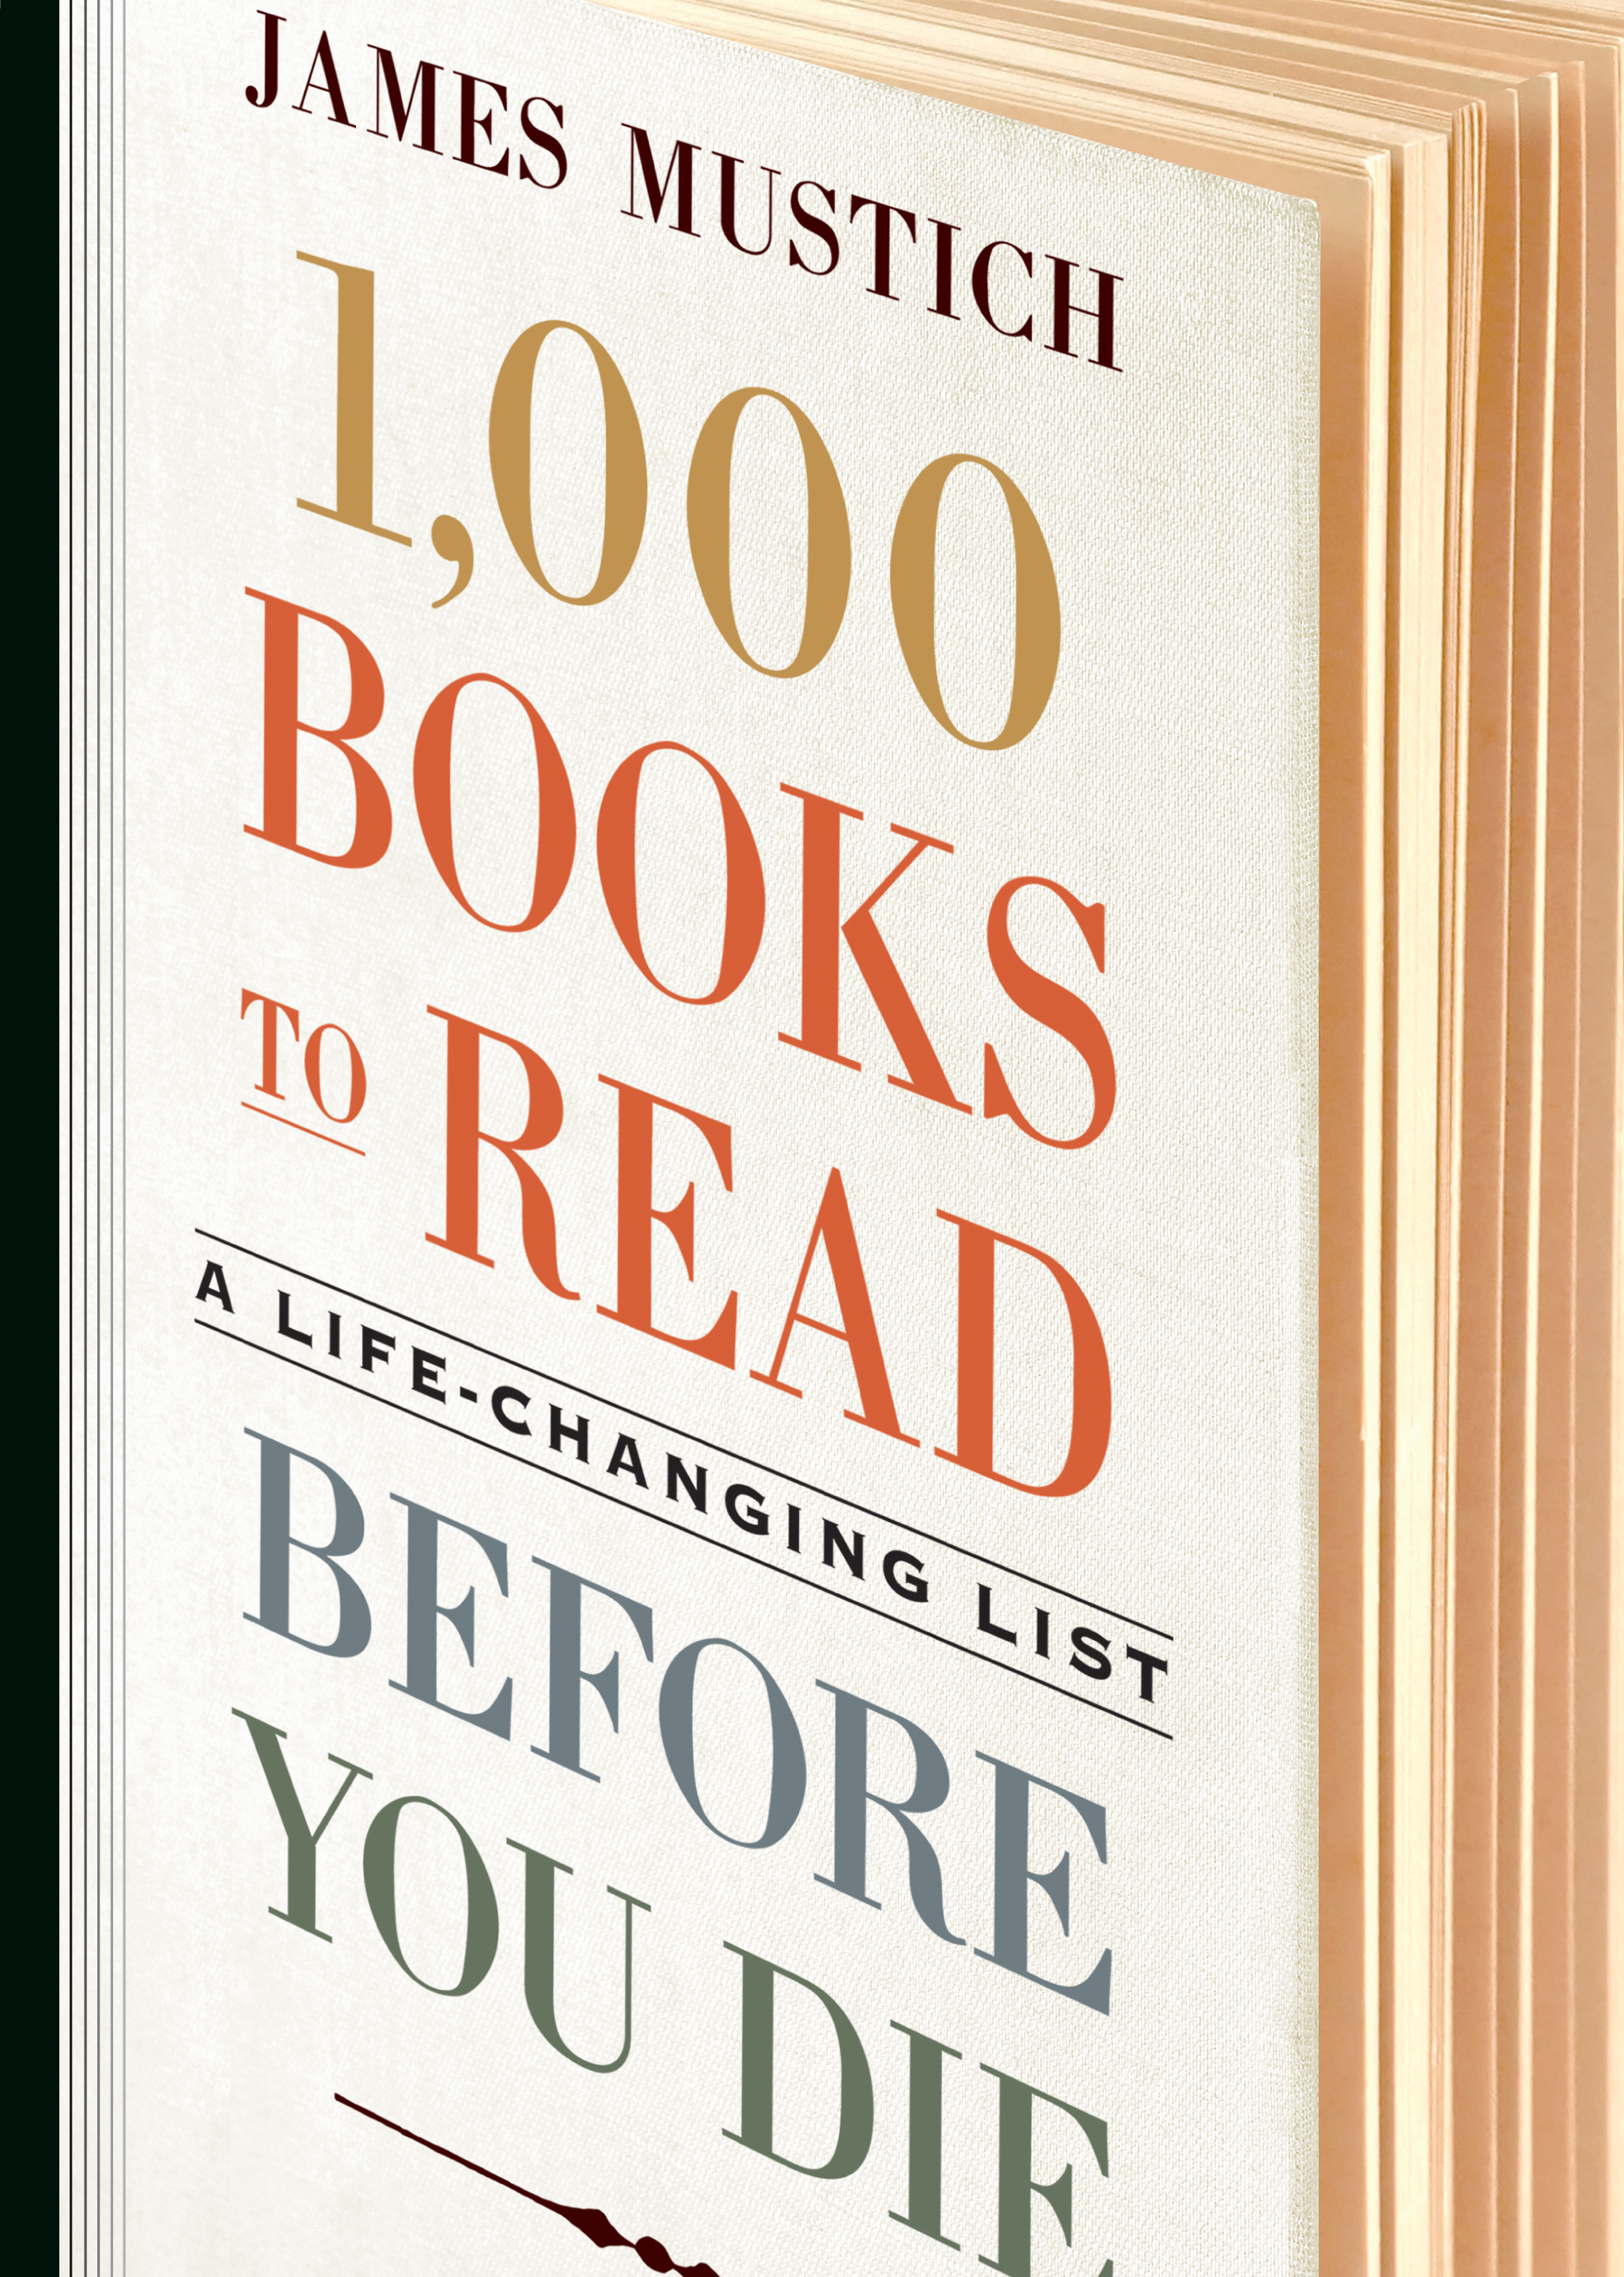 Books: reading, discussion: a selection of sites